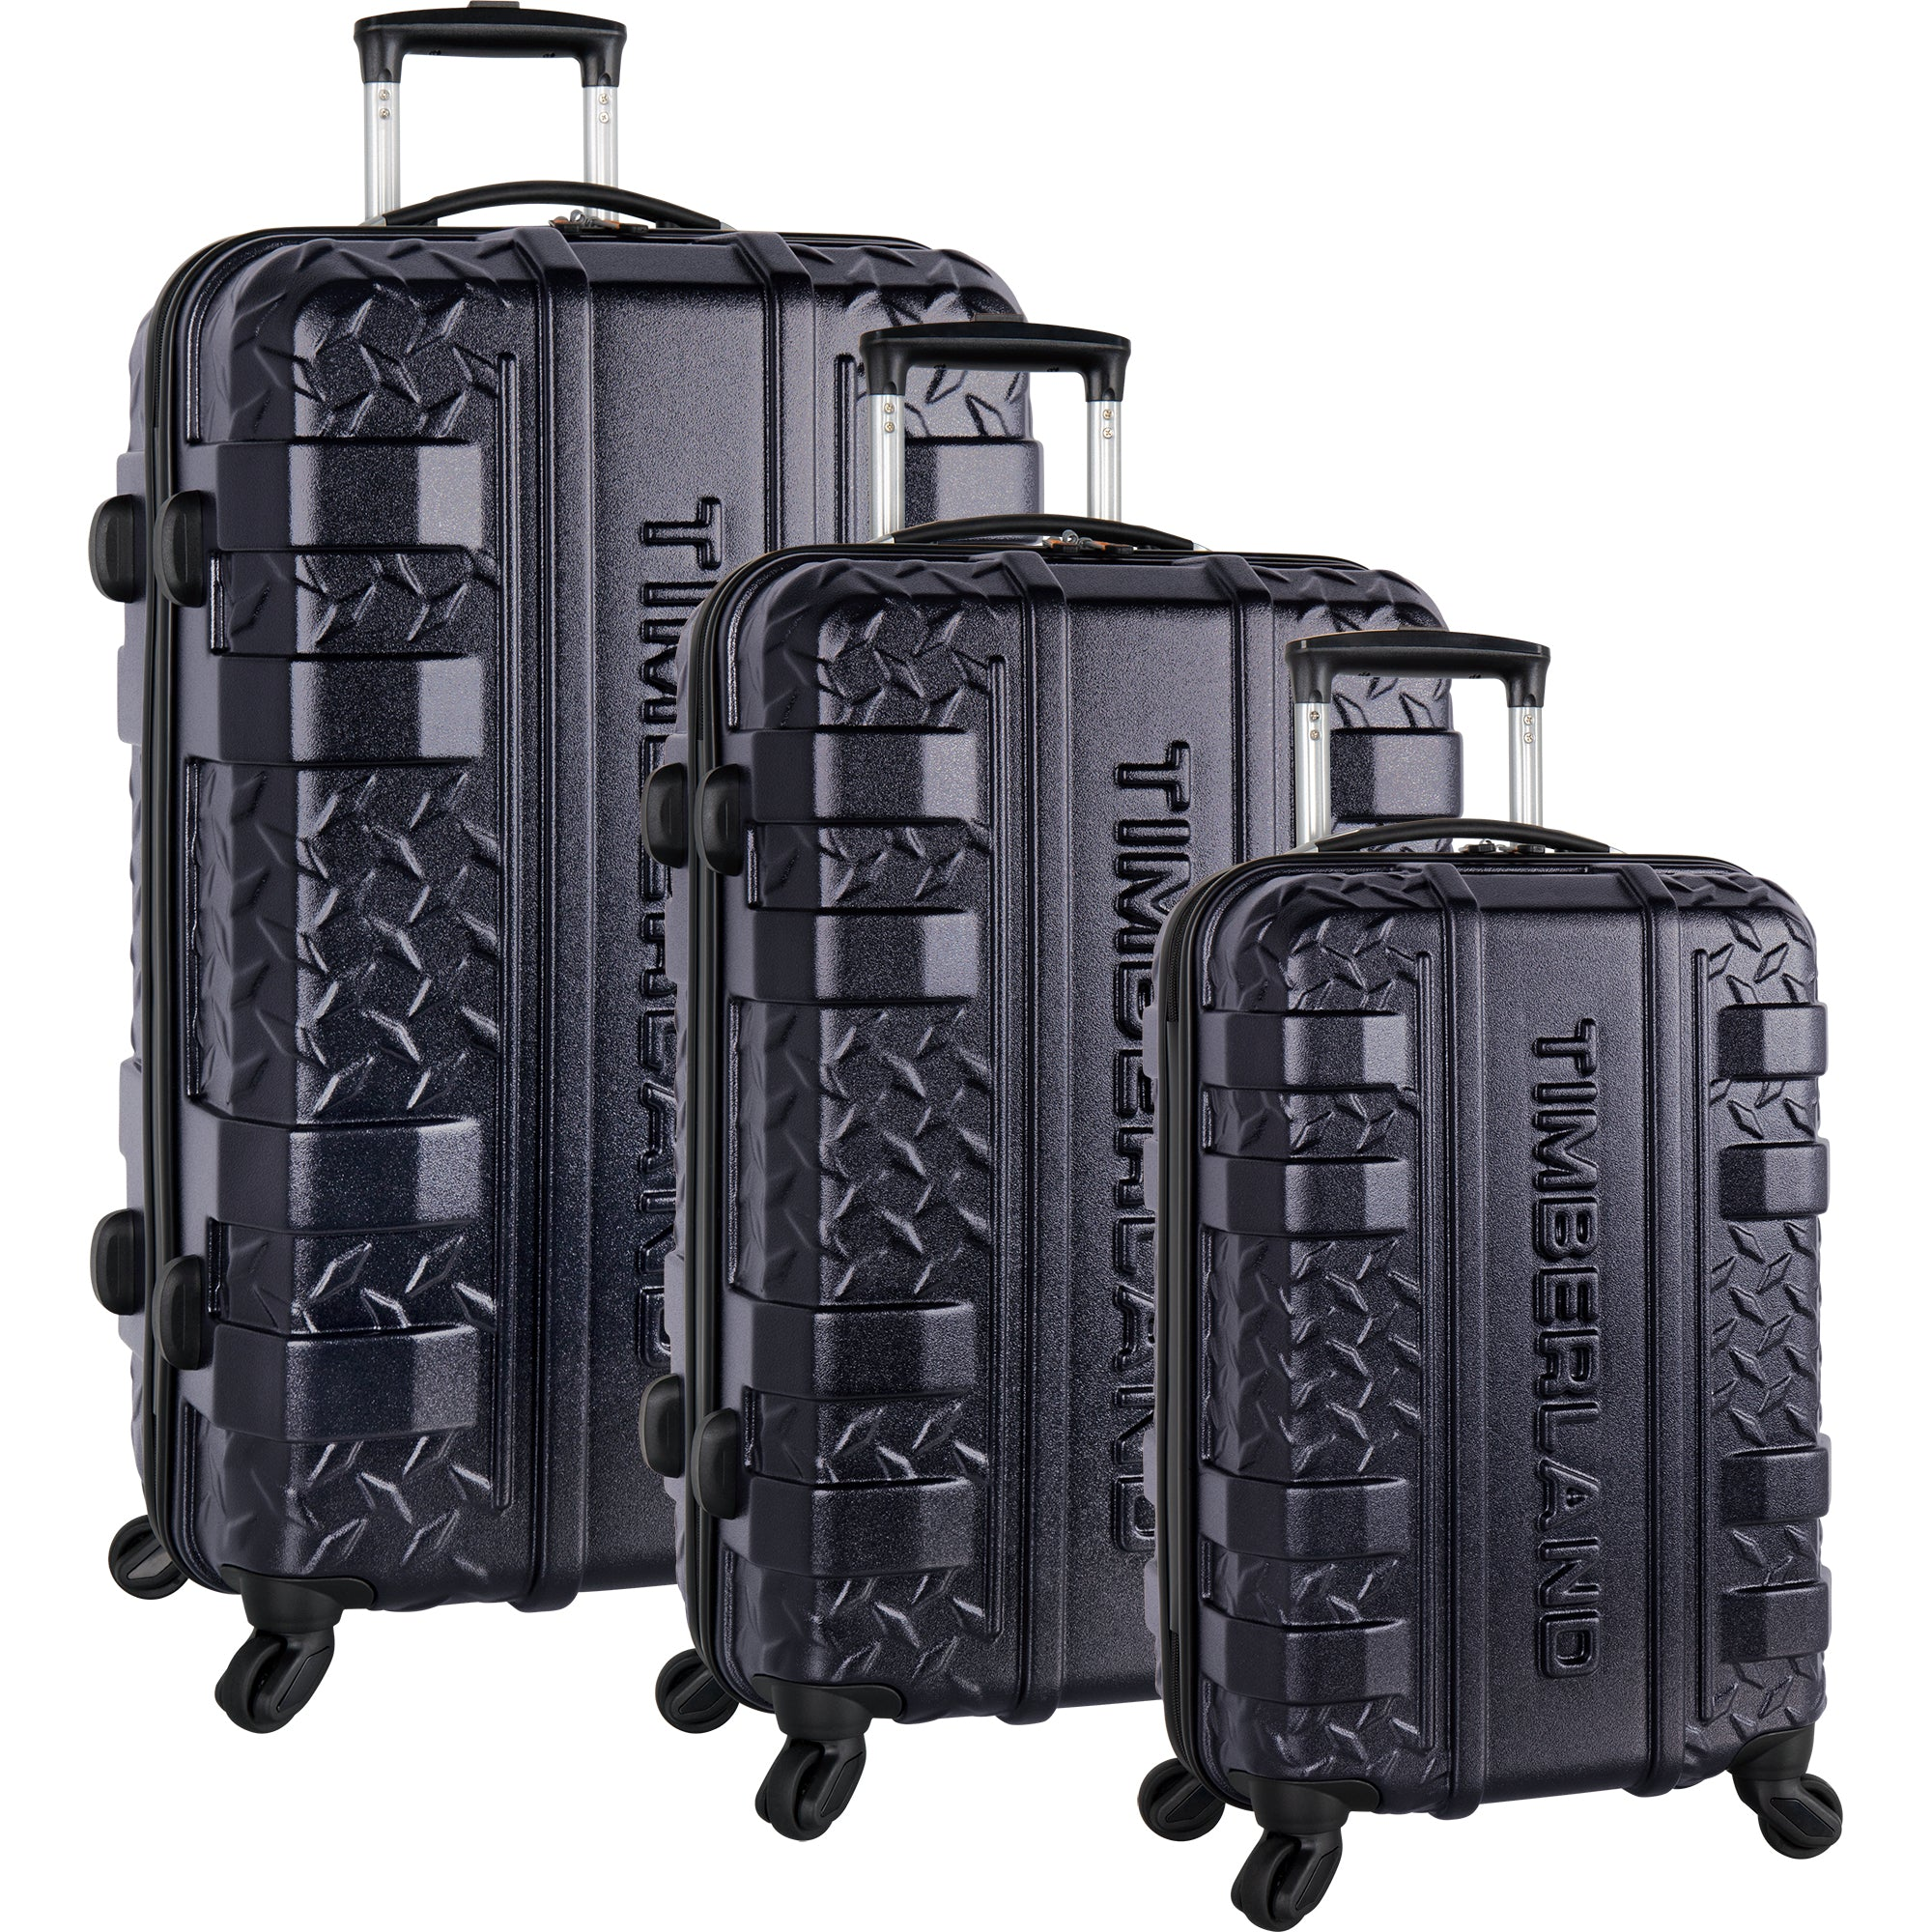 8b782046d1 Timberland Keele Ridge 3 Piece Hardside Spinner Luggage Set. Group Urban  Chic · Group Jet Black · Group Dark Sapphire ...